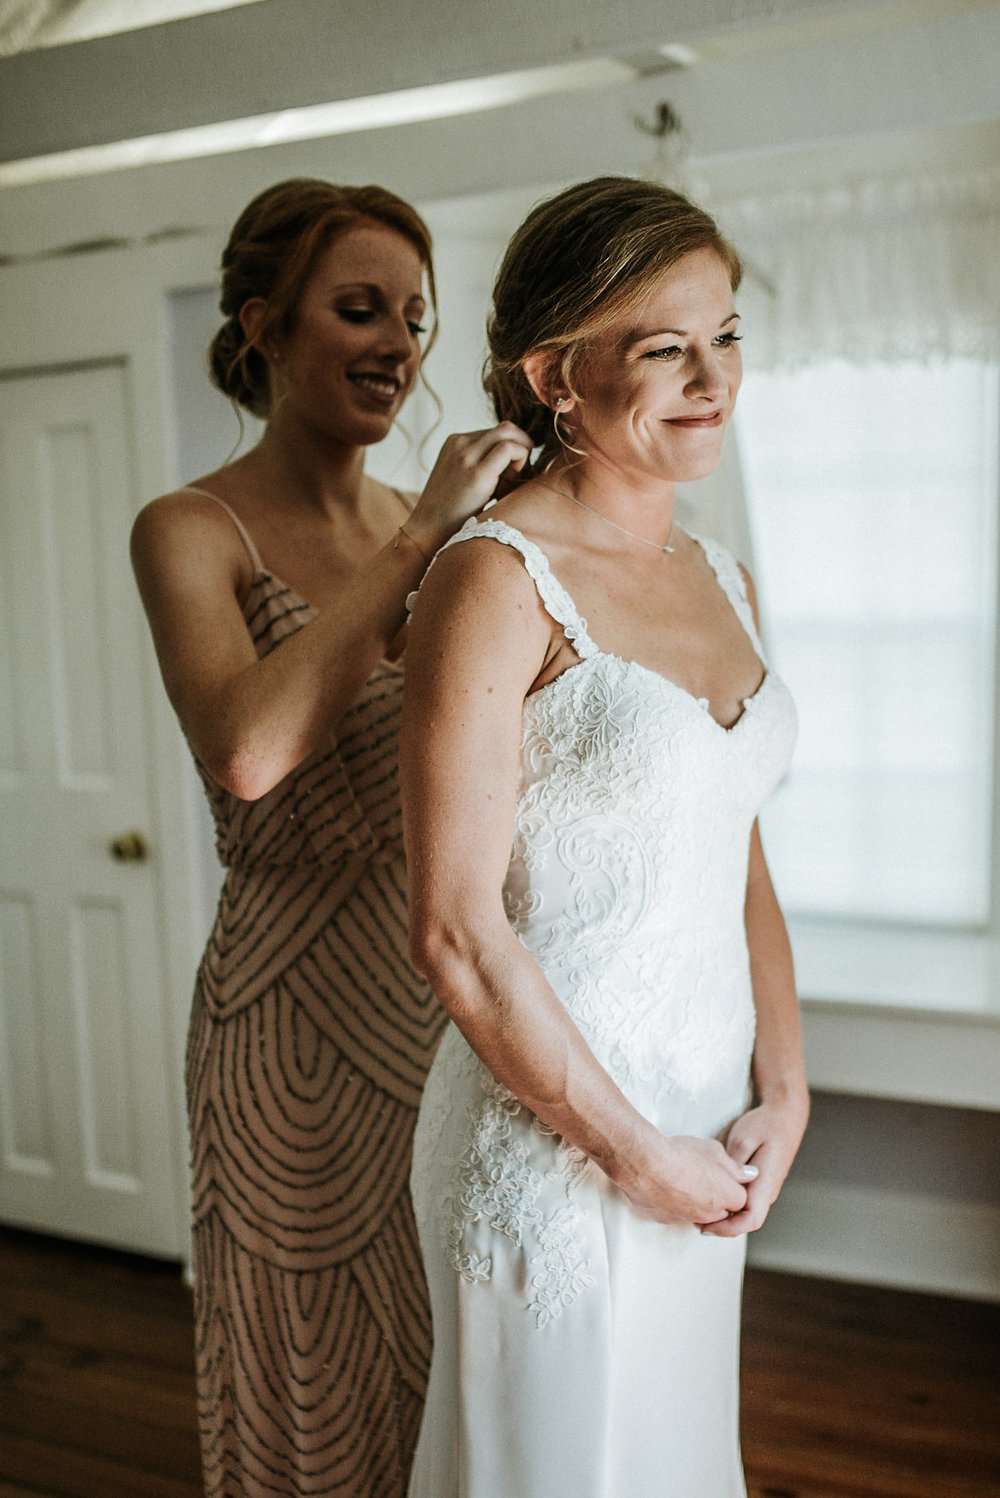 Bridesmaid putting on bride's necklace